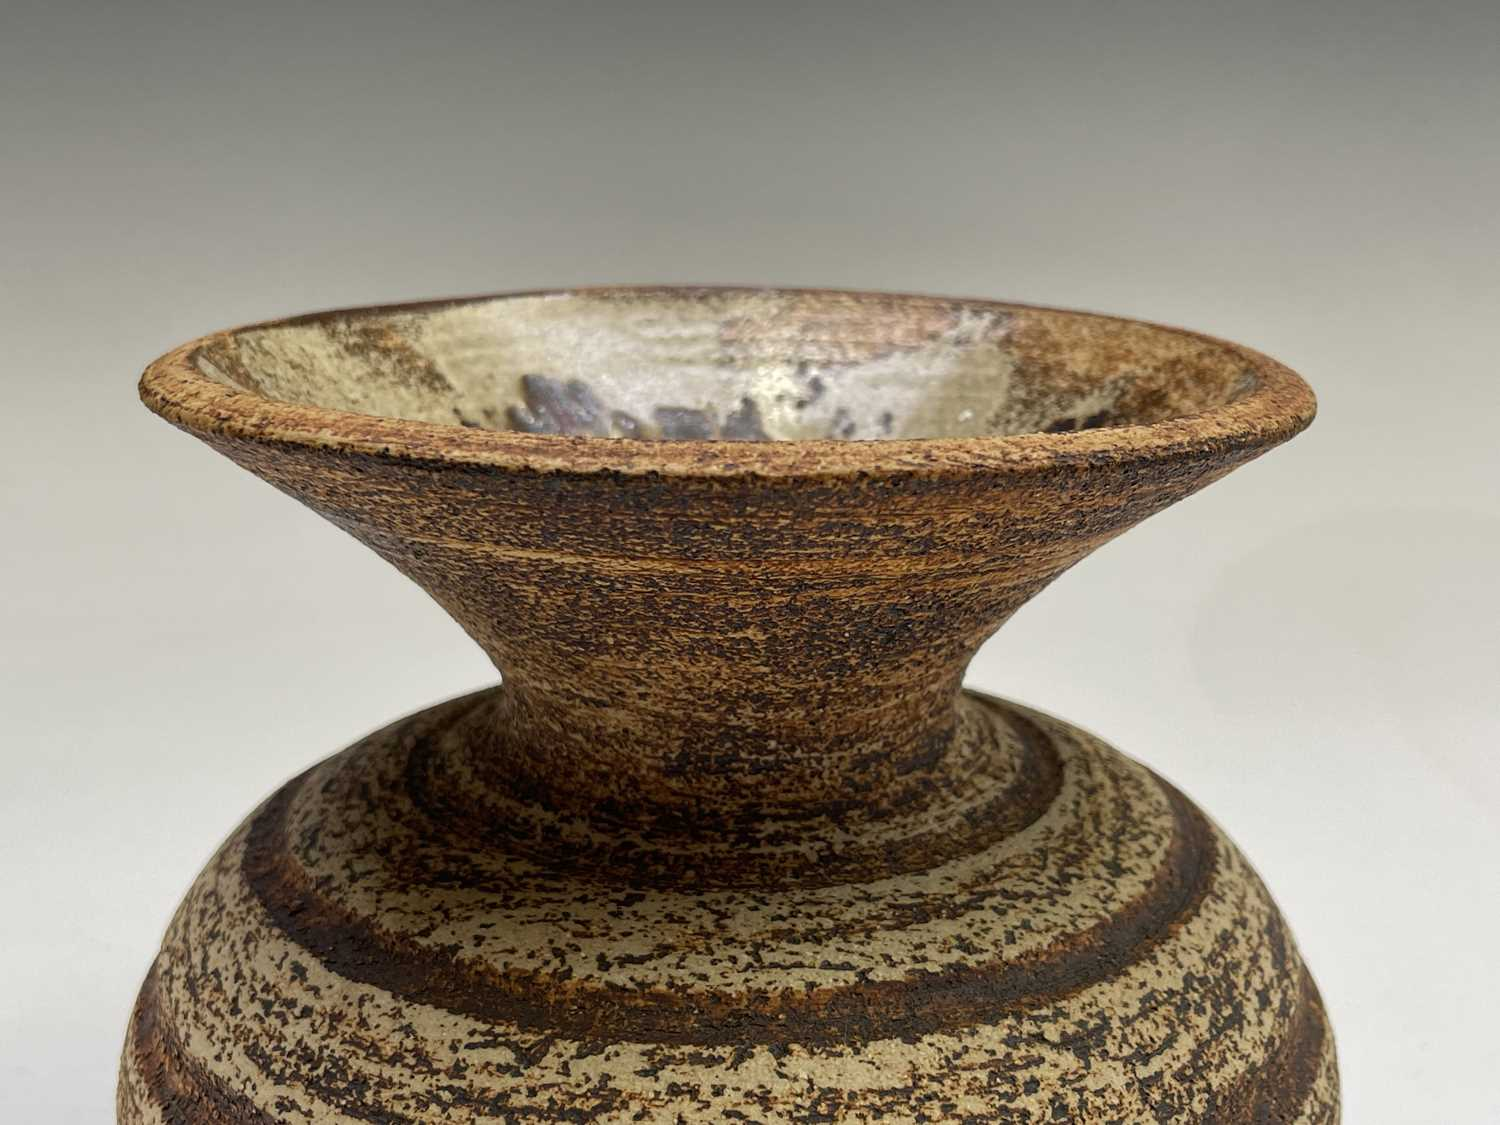 Waistel COOPER (1923-2003) Squat Form Vase with banded decoration and textured glaze Signed to - Image 8 of 9